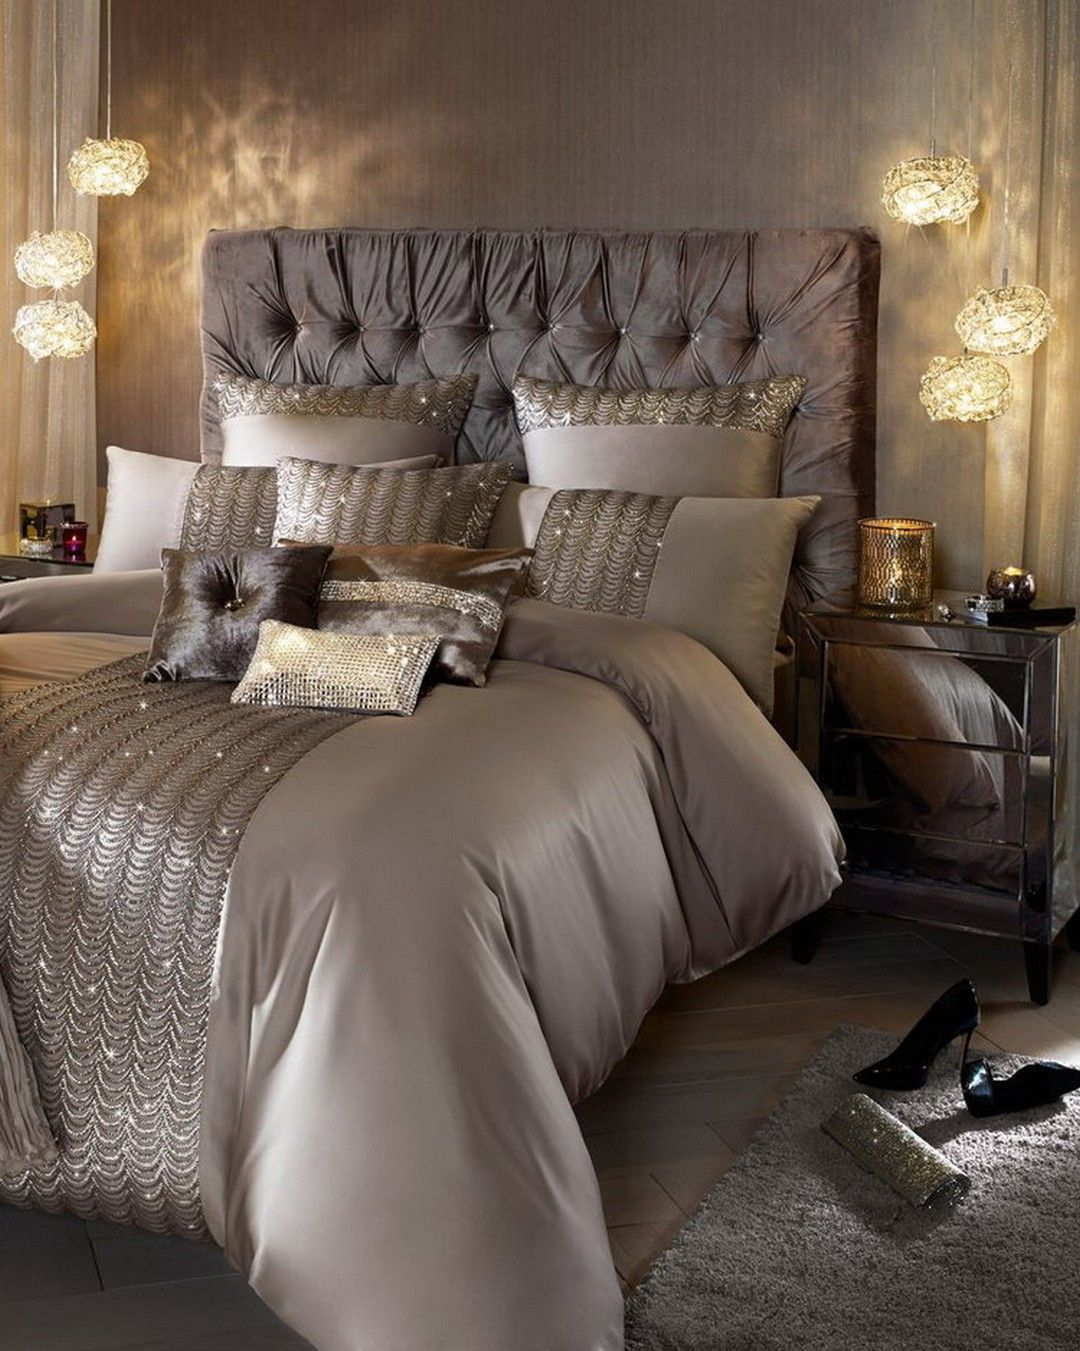 77 Best Ideas To Make Your Bedroom Extra Cozy And Romantic Https://www. Schlafzimmer  IdeenSchlafzimmer FarbenHaus DekoBettenWohnung EinrichtenEinrichten ...